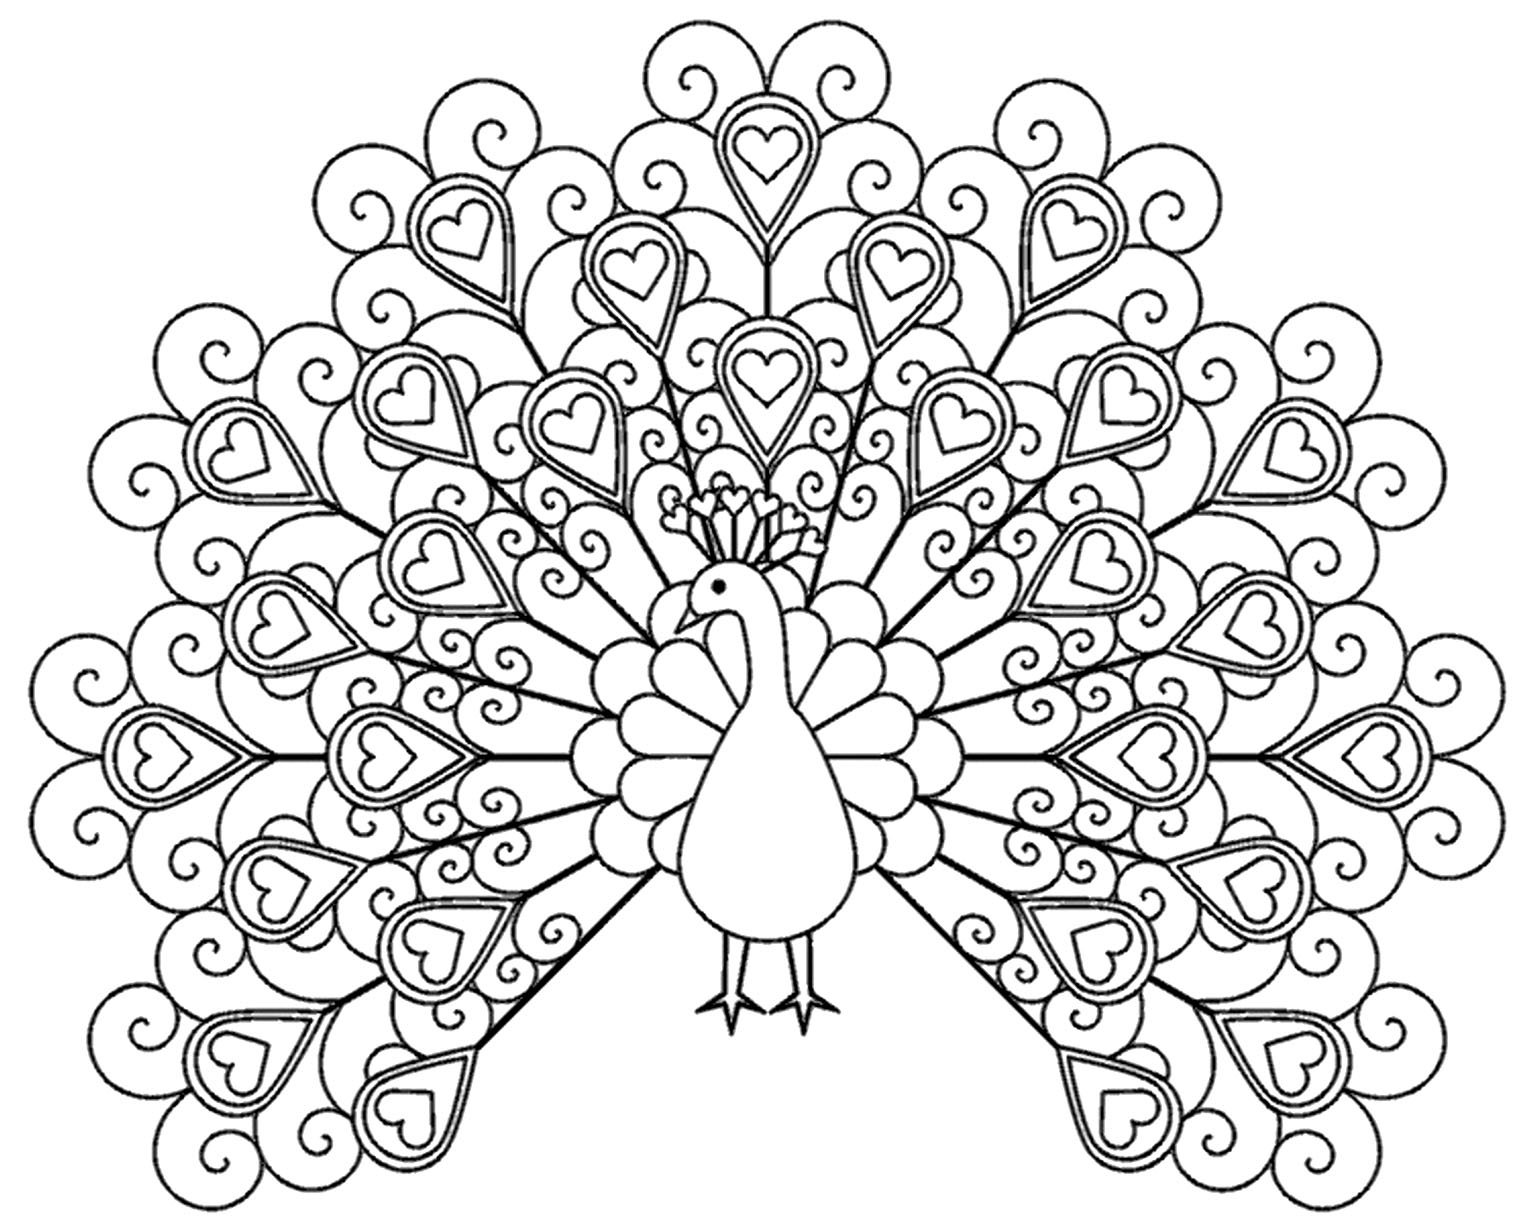 Peacocks to color for children - Peacocks Kids Coloring Pages